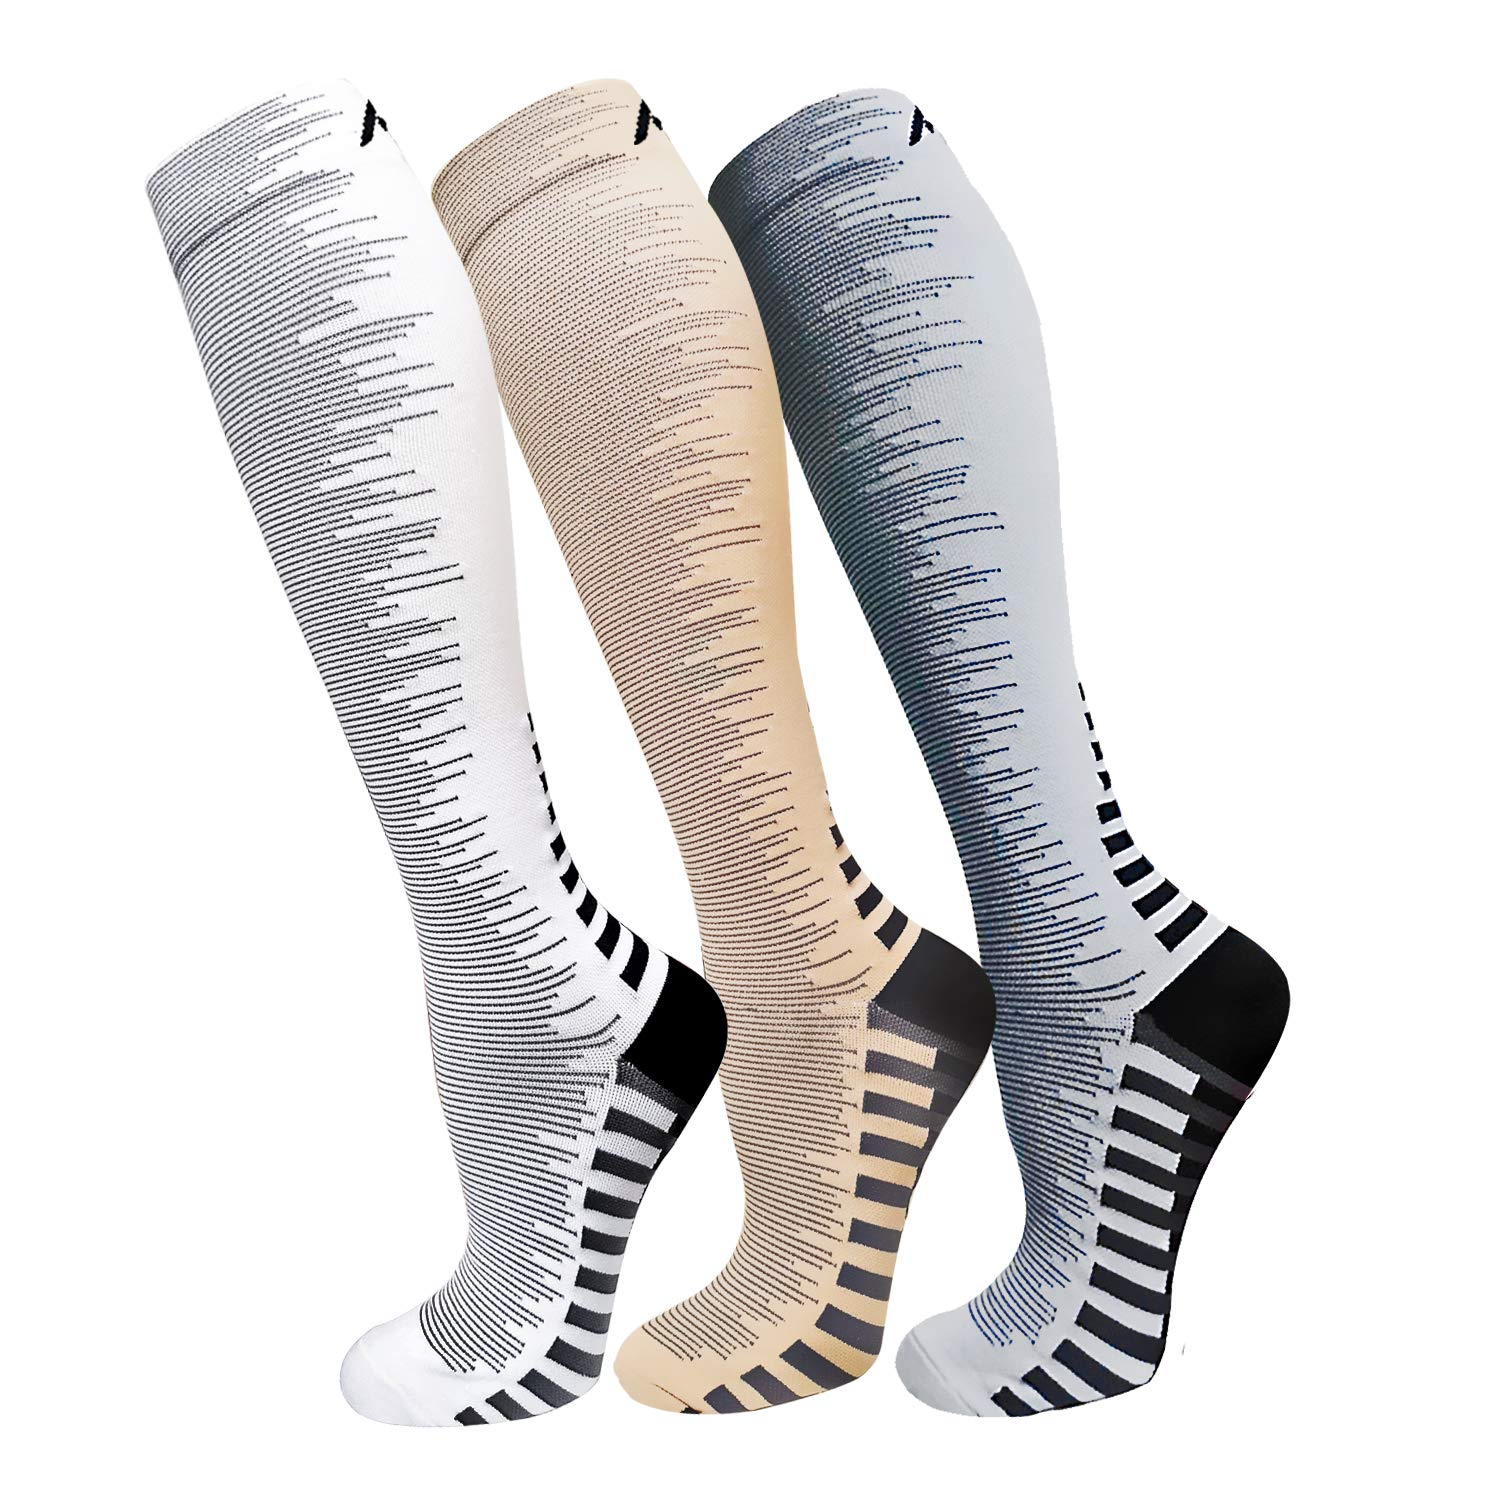 Compression Socks For Men & Women(3 Pairs)- Best For Running,Athletic,Medical,Pregnancy and Travel -15-20mmHg (L/XL, Multicoloured 11) by FuelMeFoot